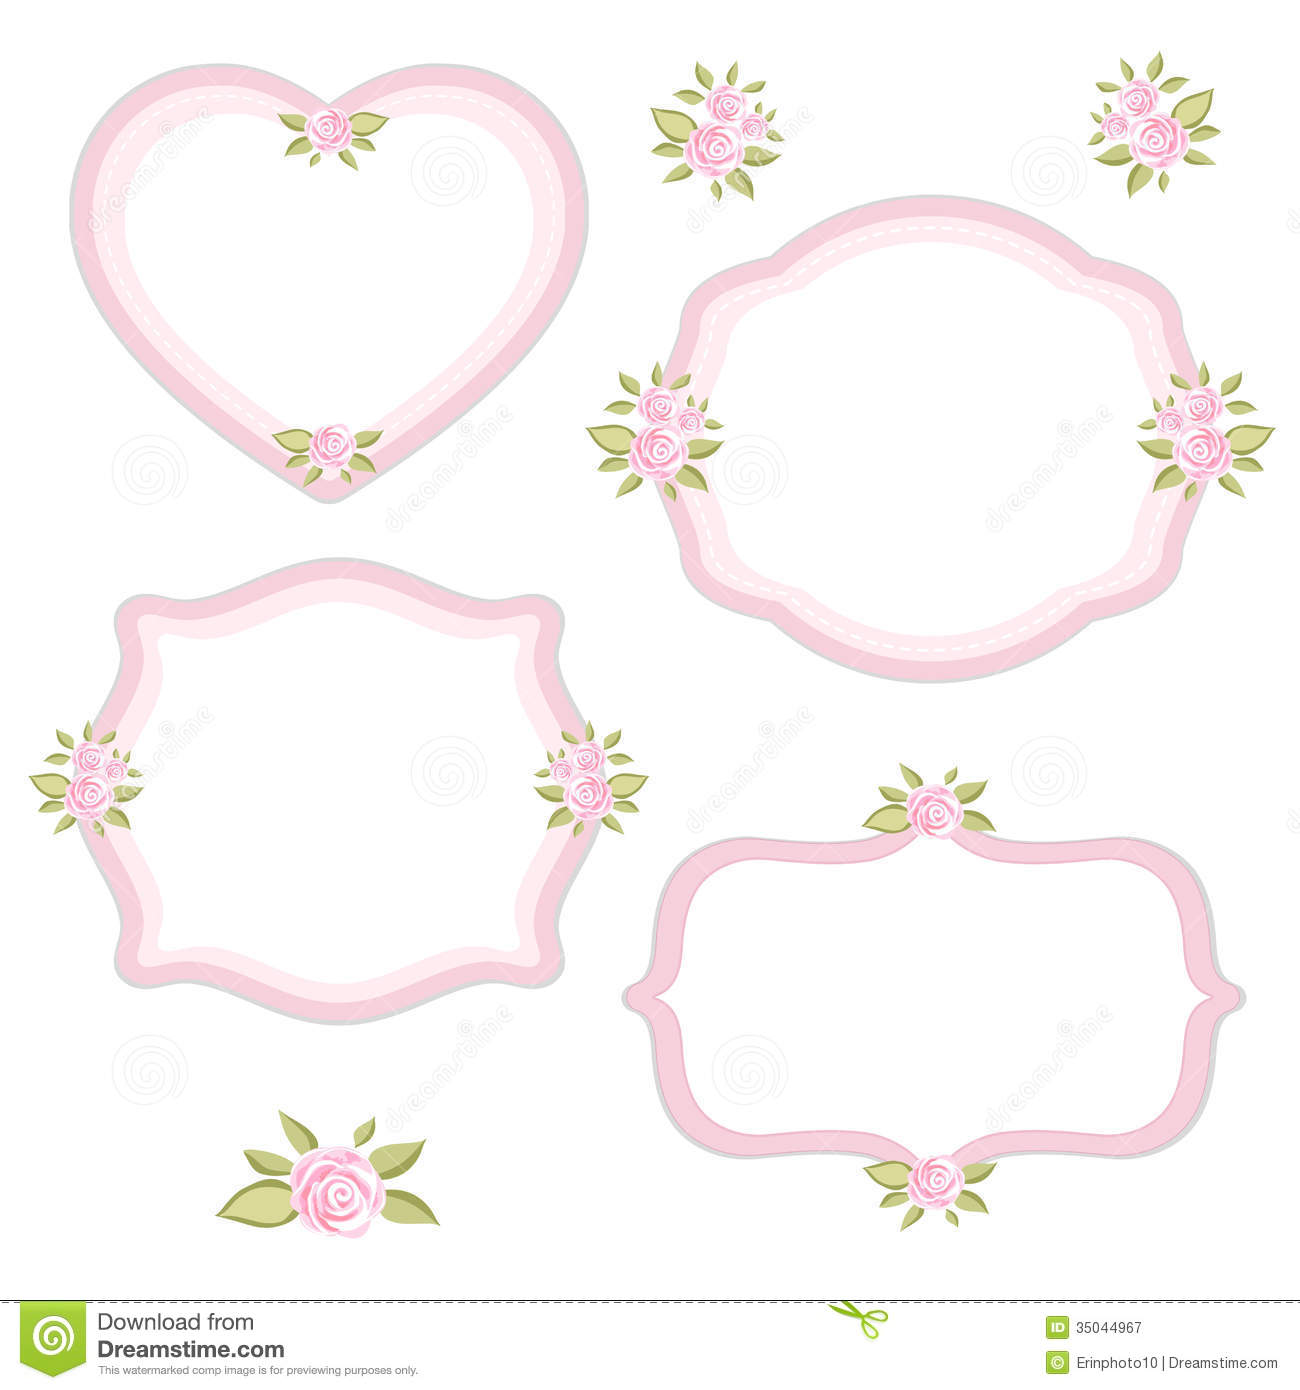 Vintage Frames Set 3 Stock Vector Illustration Of Ornament 35044967